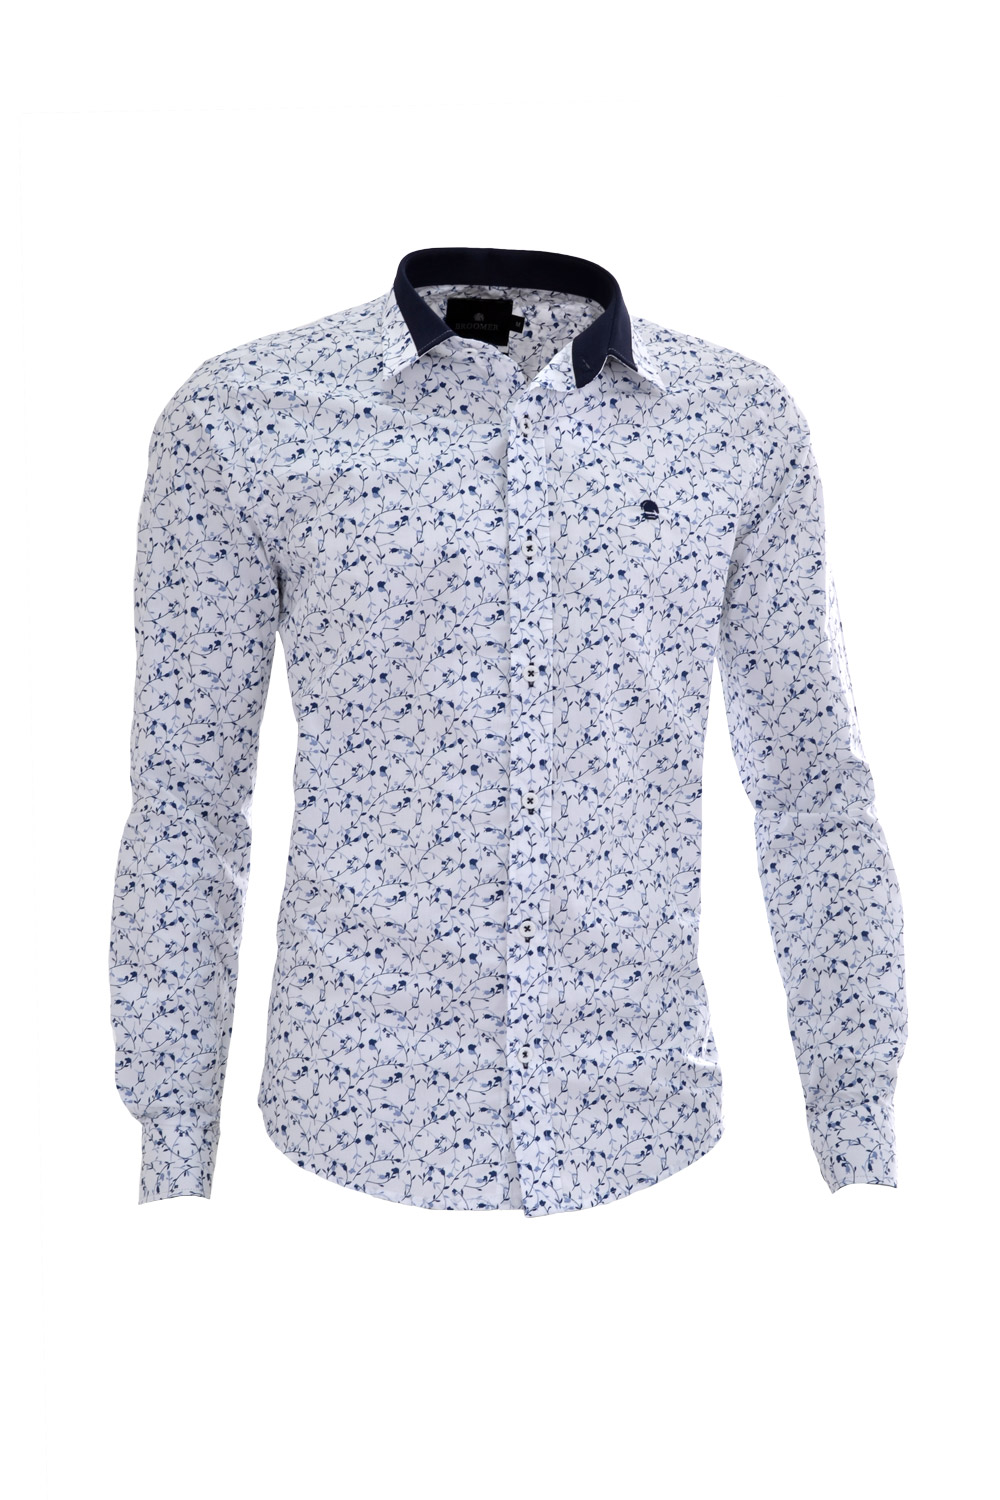 CAMISA ML FASHION SUPER SLIM ALGODAO COMPOSE FLORAL BRANCO